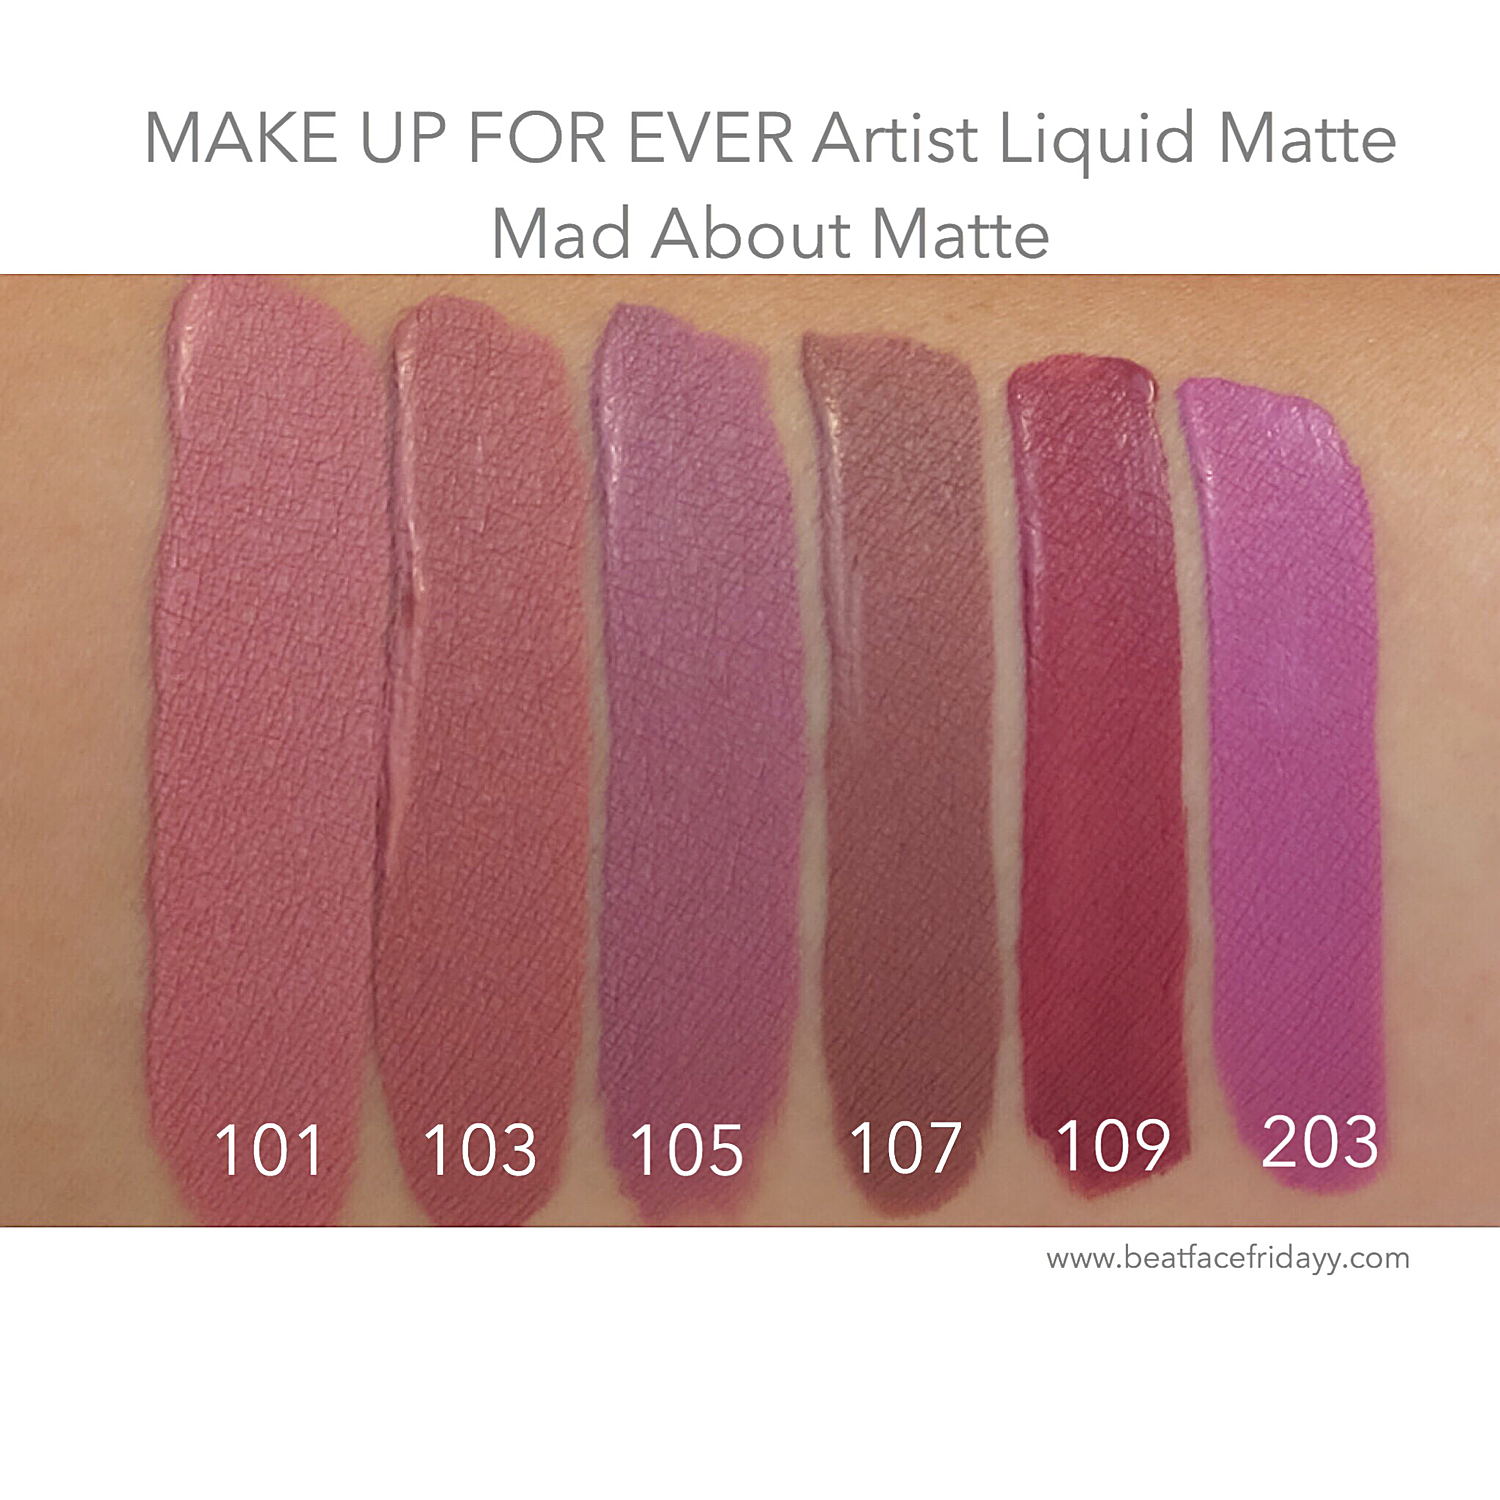 Make Up Forever, Liquid Lipstick. Swatches I have 105